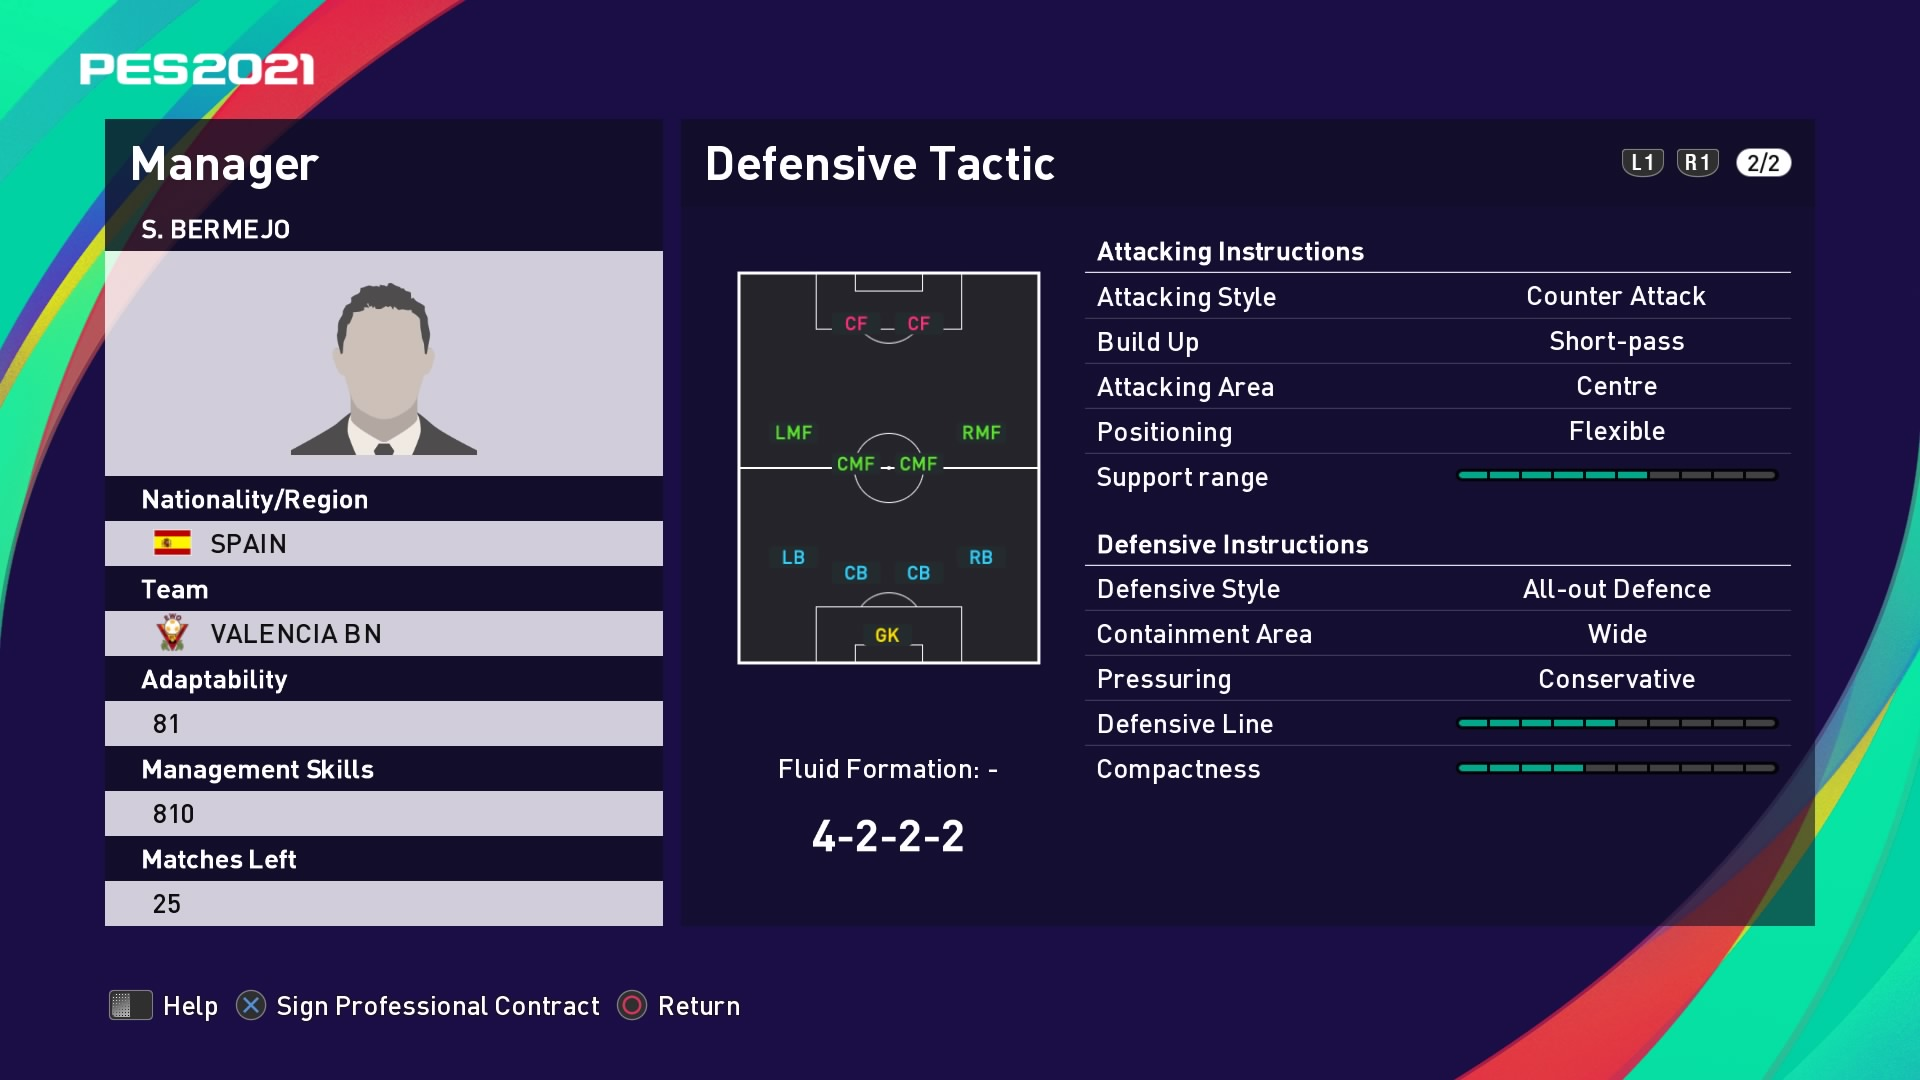 S. Bermejo (Javi Gracia) Defensive Tactic in PES 2021 myClub